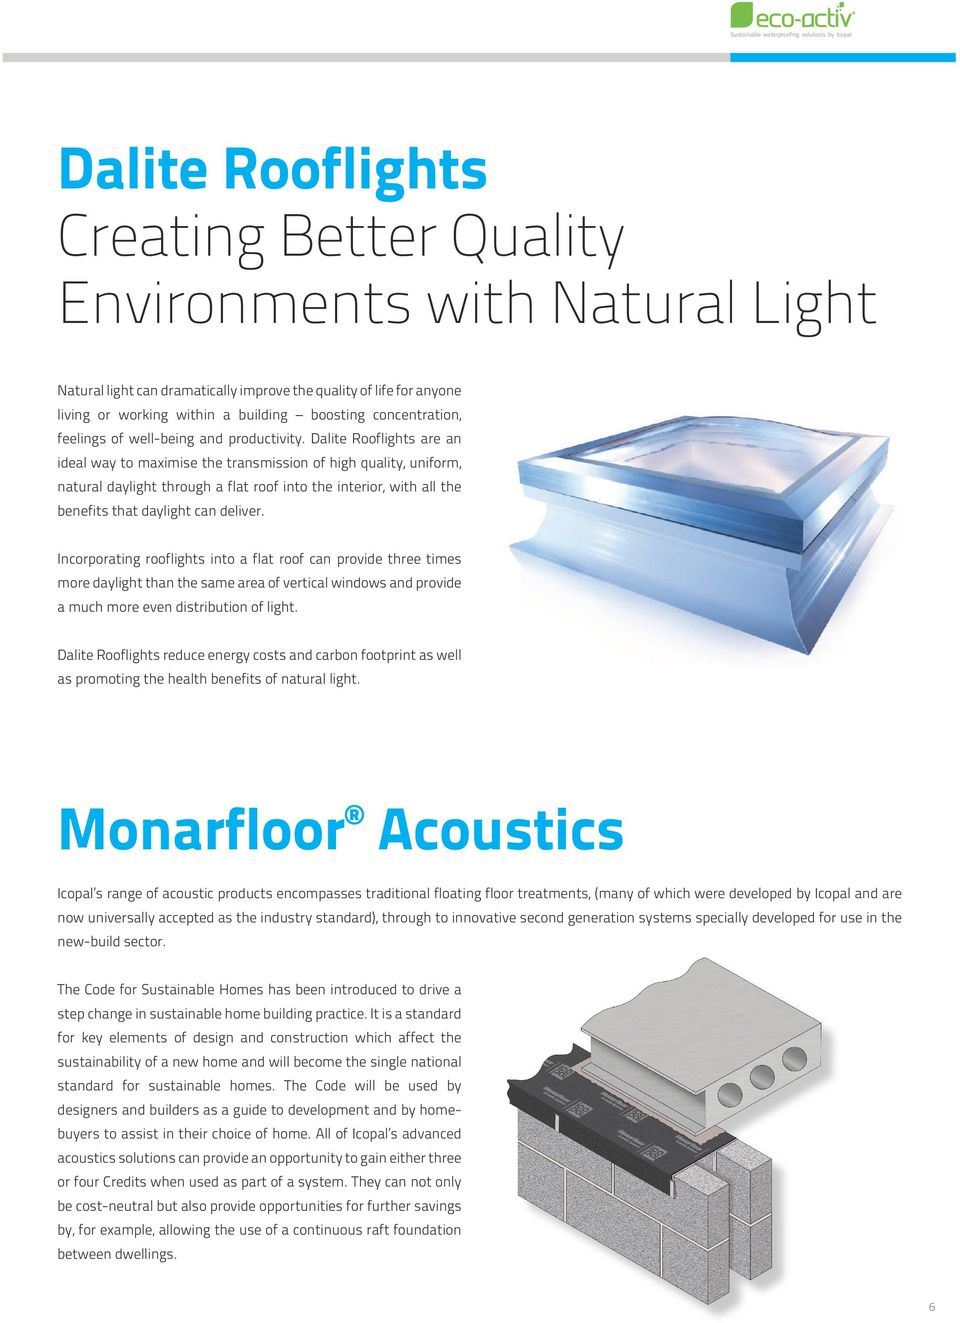 Dalite Rooflights are an ideal way to maximise the transmission of high quality, uniform, natural daylight through a flat roof into the interior, with all the benefits that daylight can deliver.